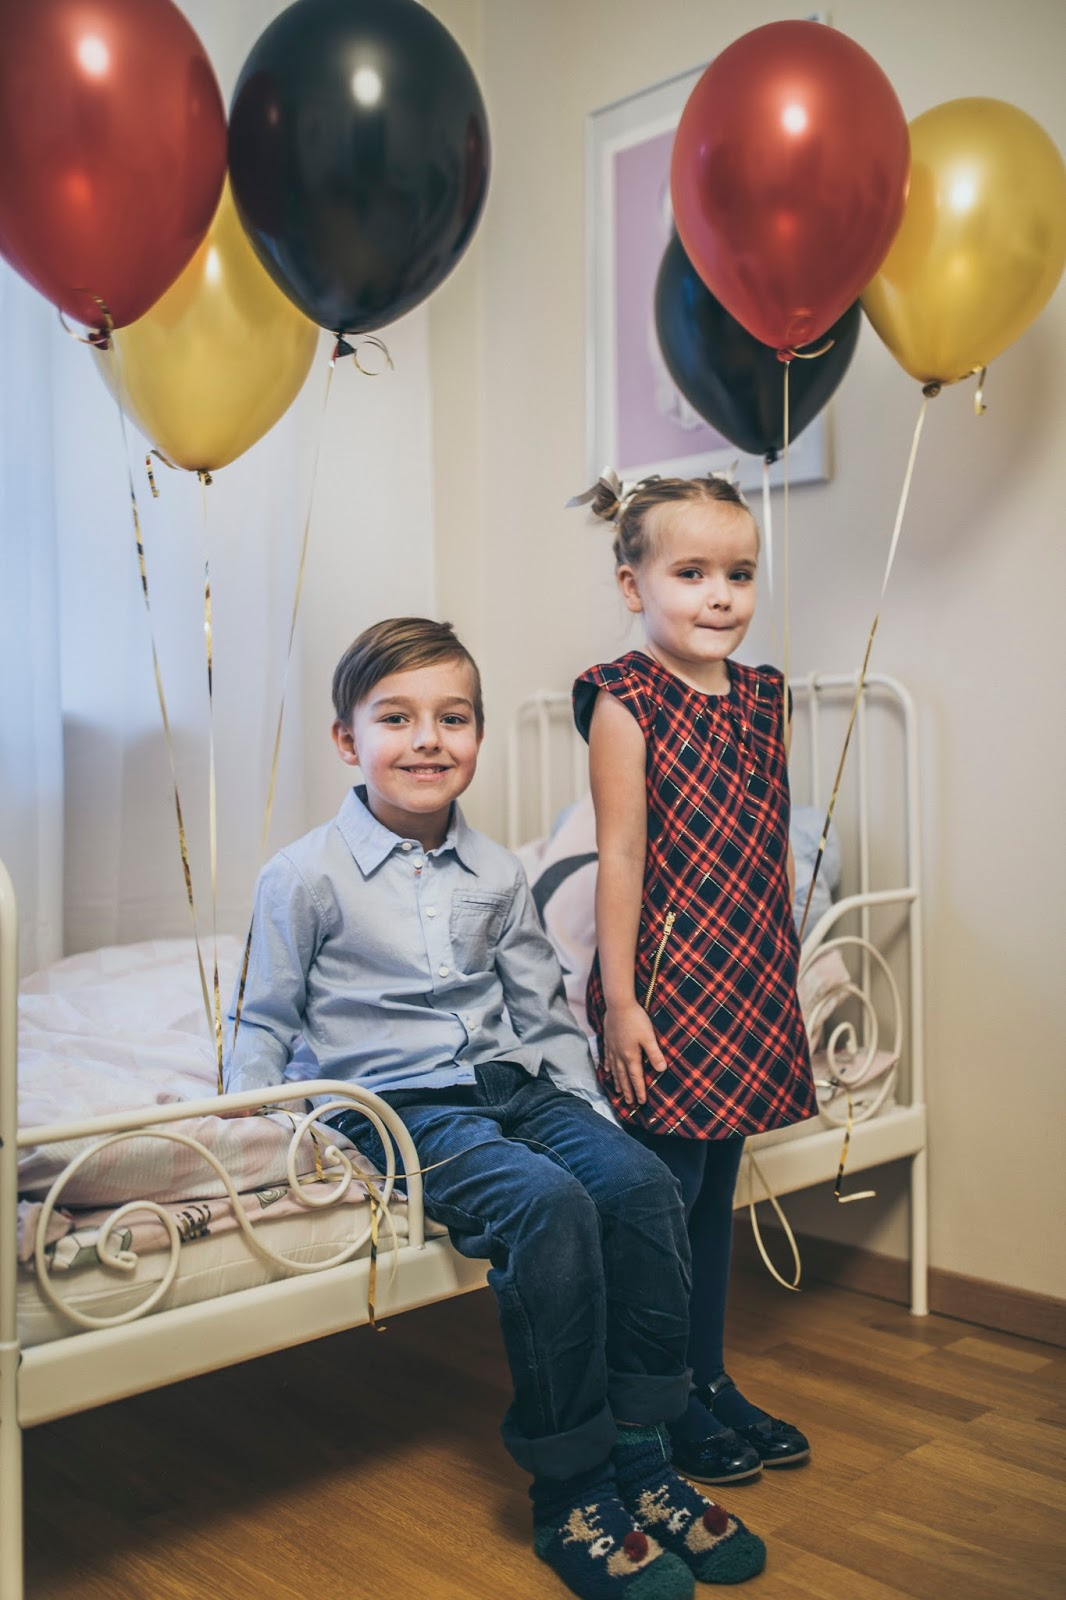 kids party balloons fun photography